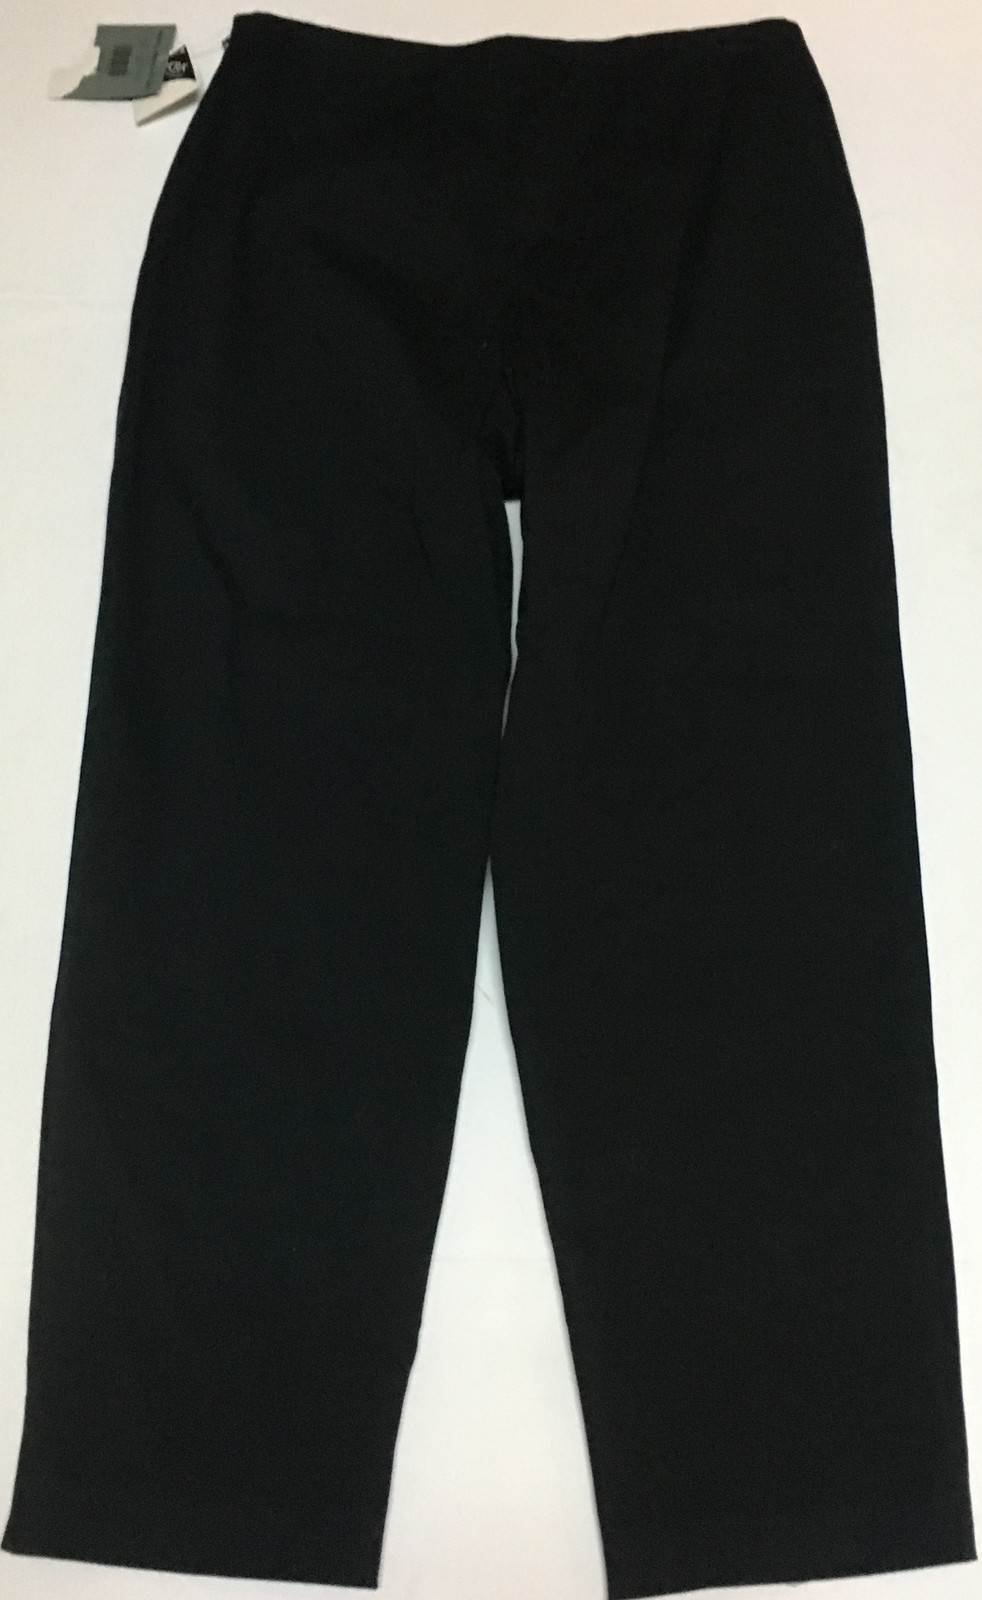 Marsh Landing Lycra Black Stretch Pants Sz 12P